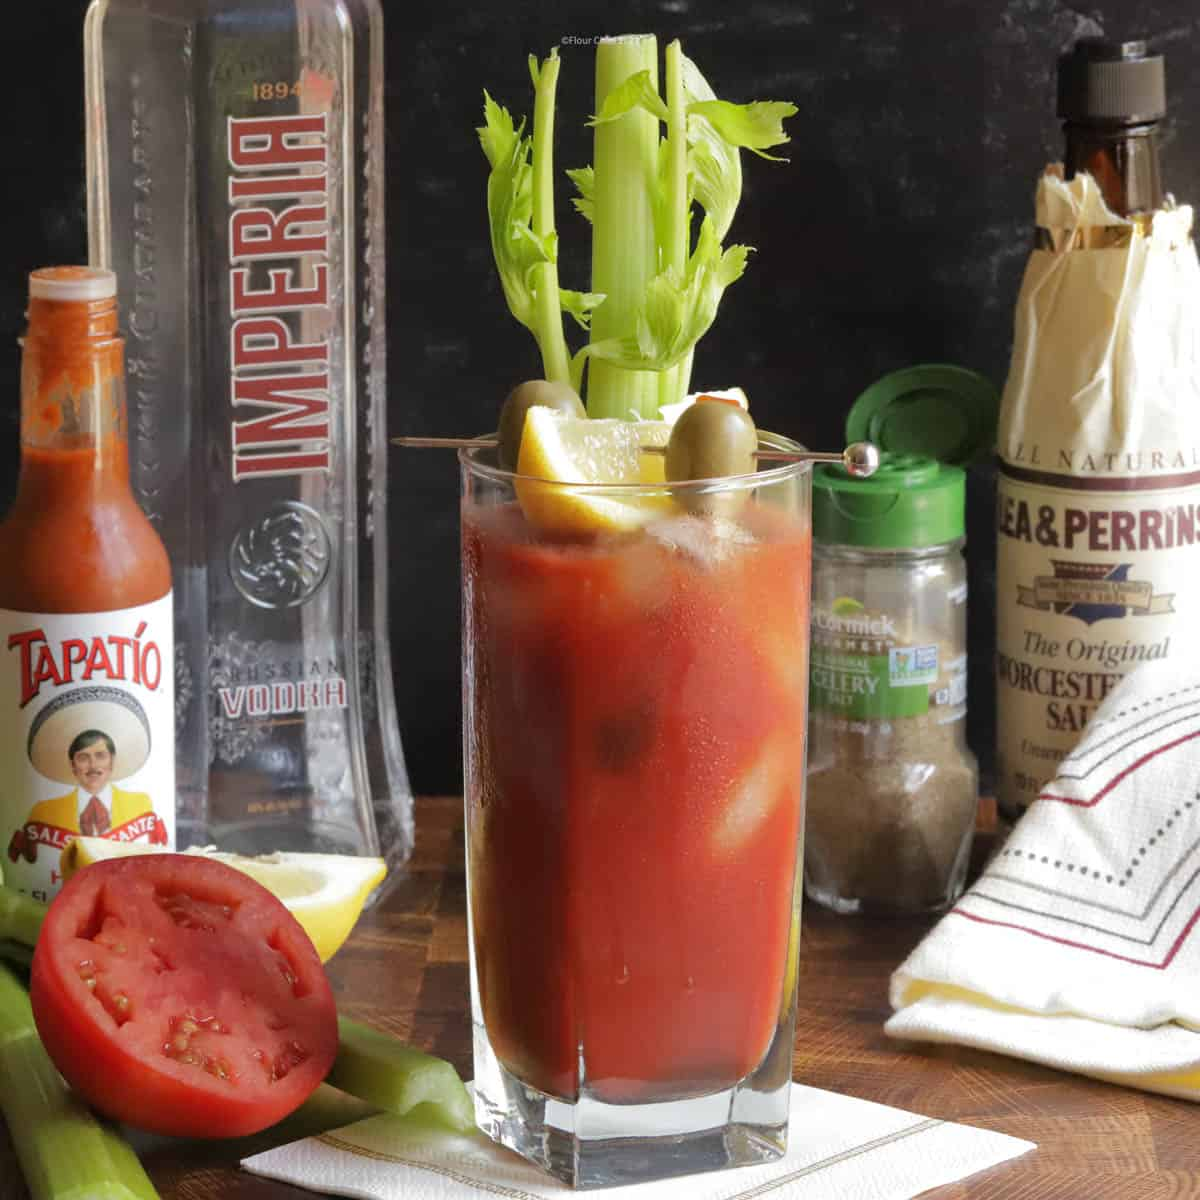 This simple vodka and tomato juice breakfast classic has turned into a brunch time favorite. The bloody mary continues to add ingredients along the way.